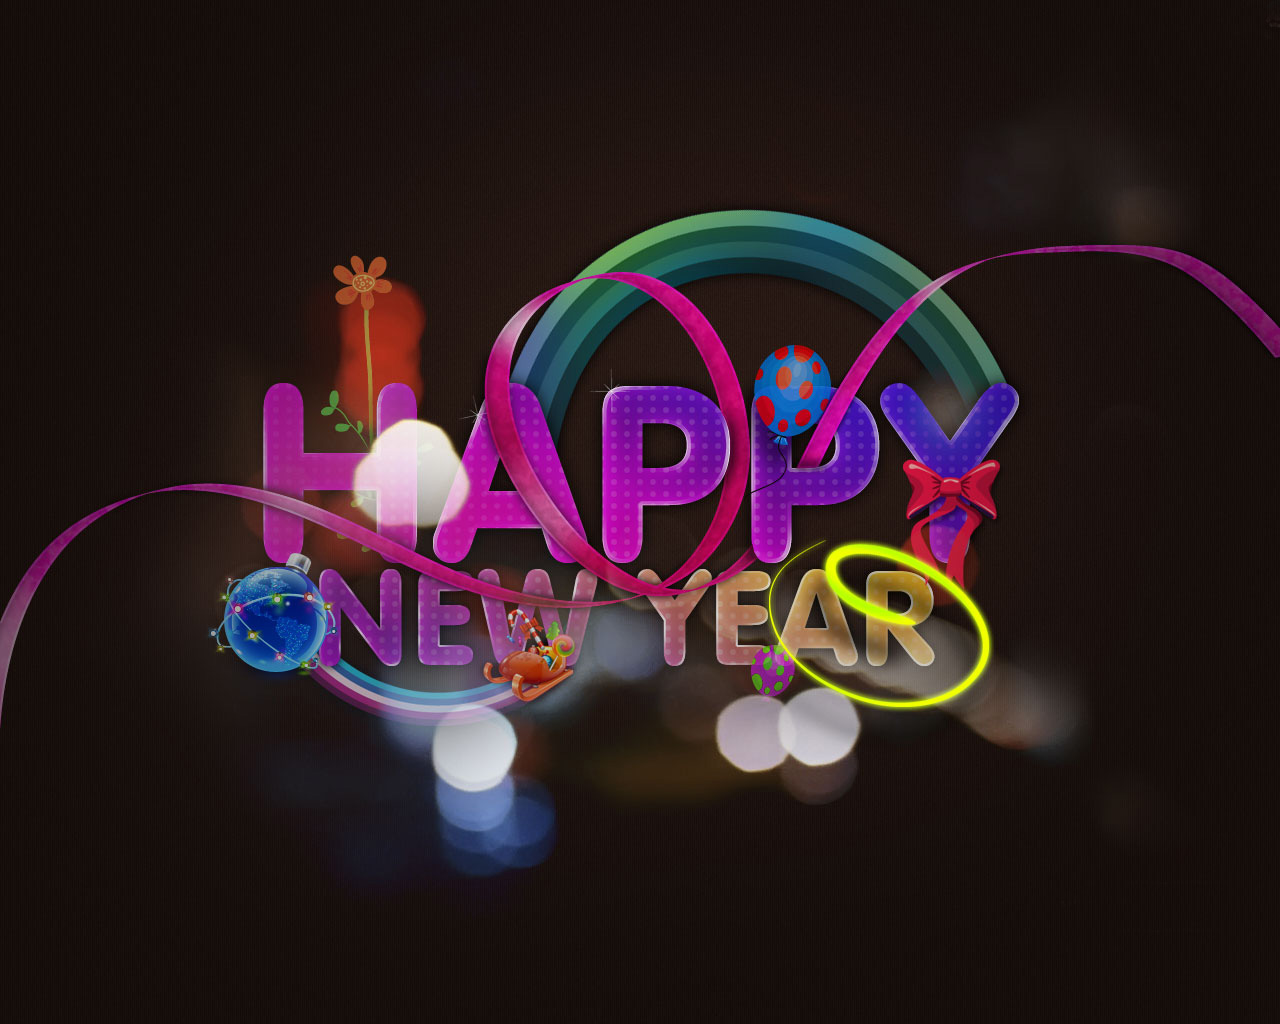 New Year HD Wallpaper